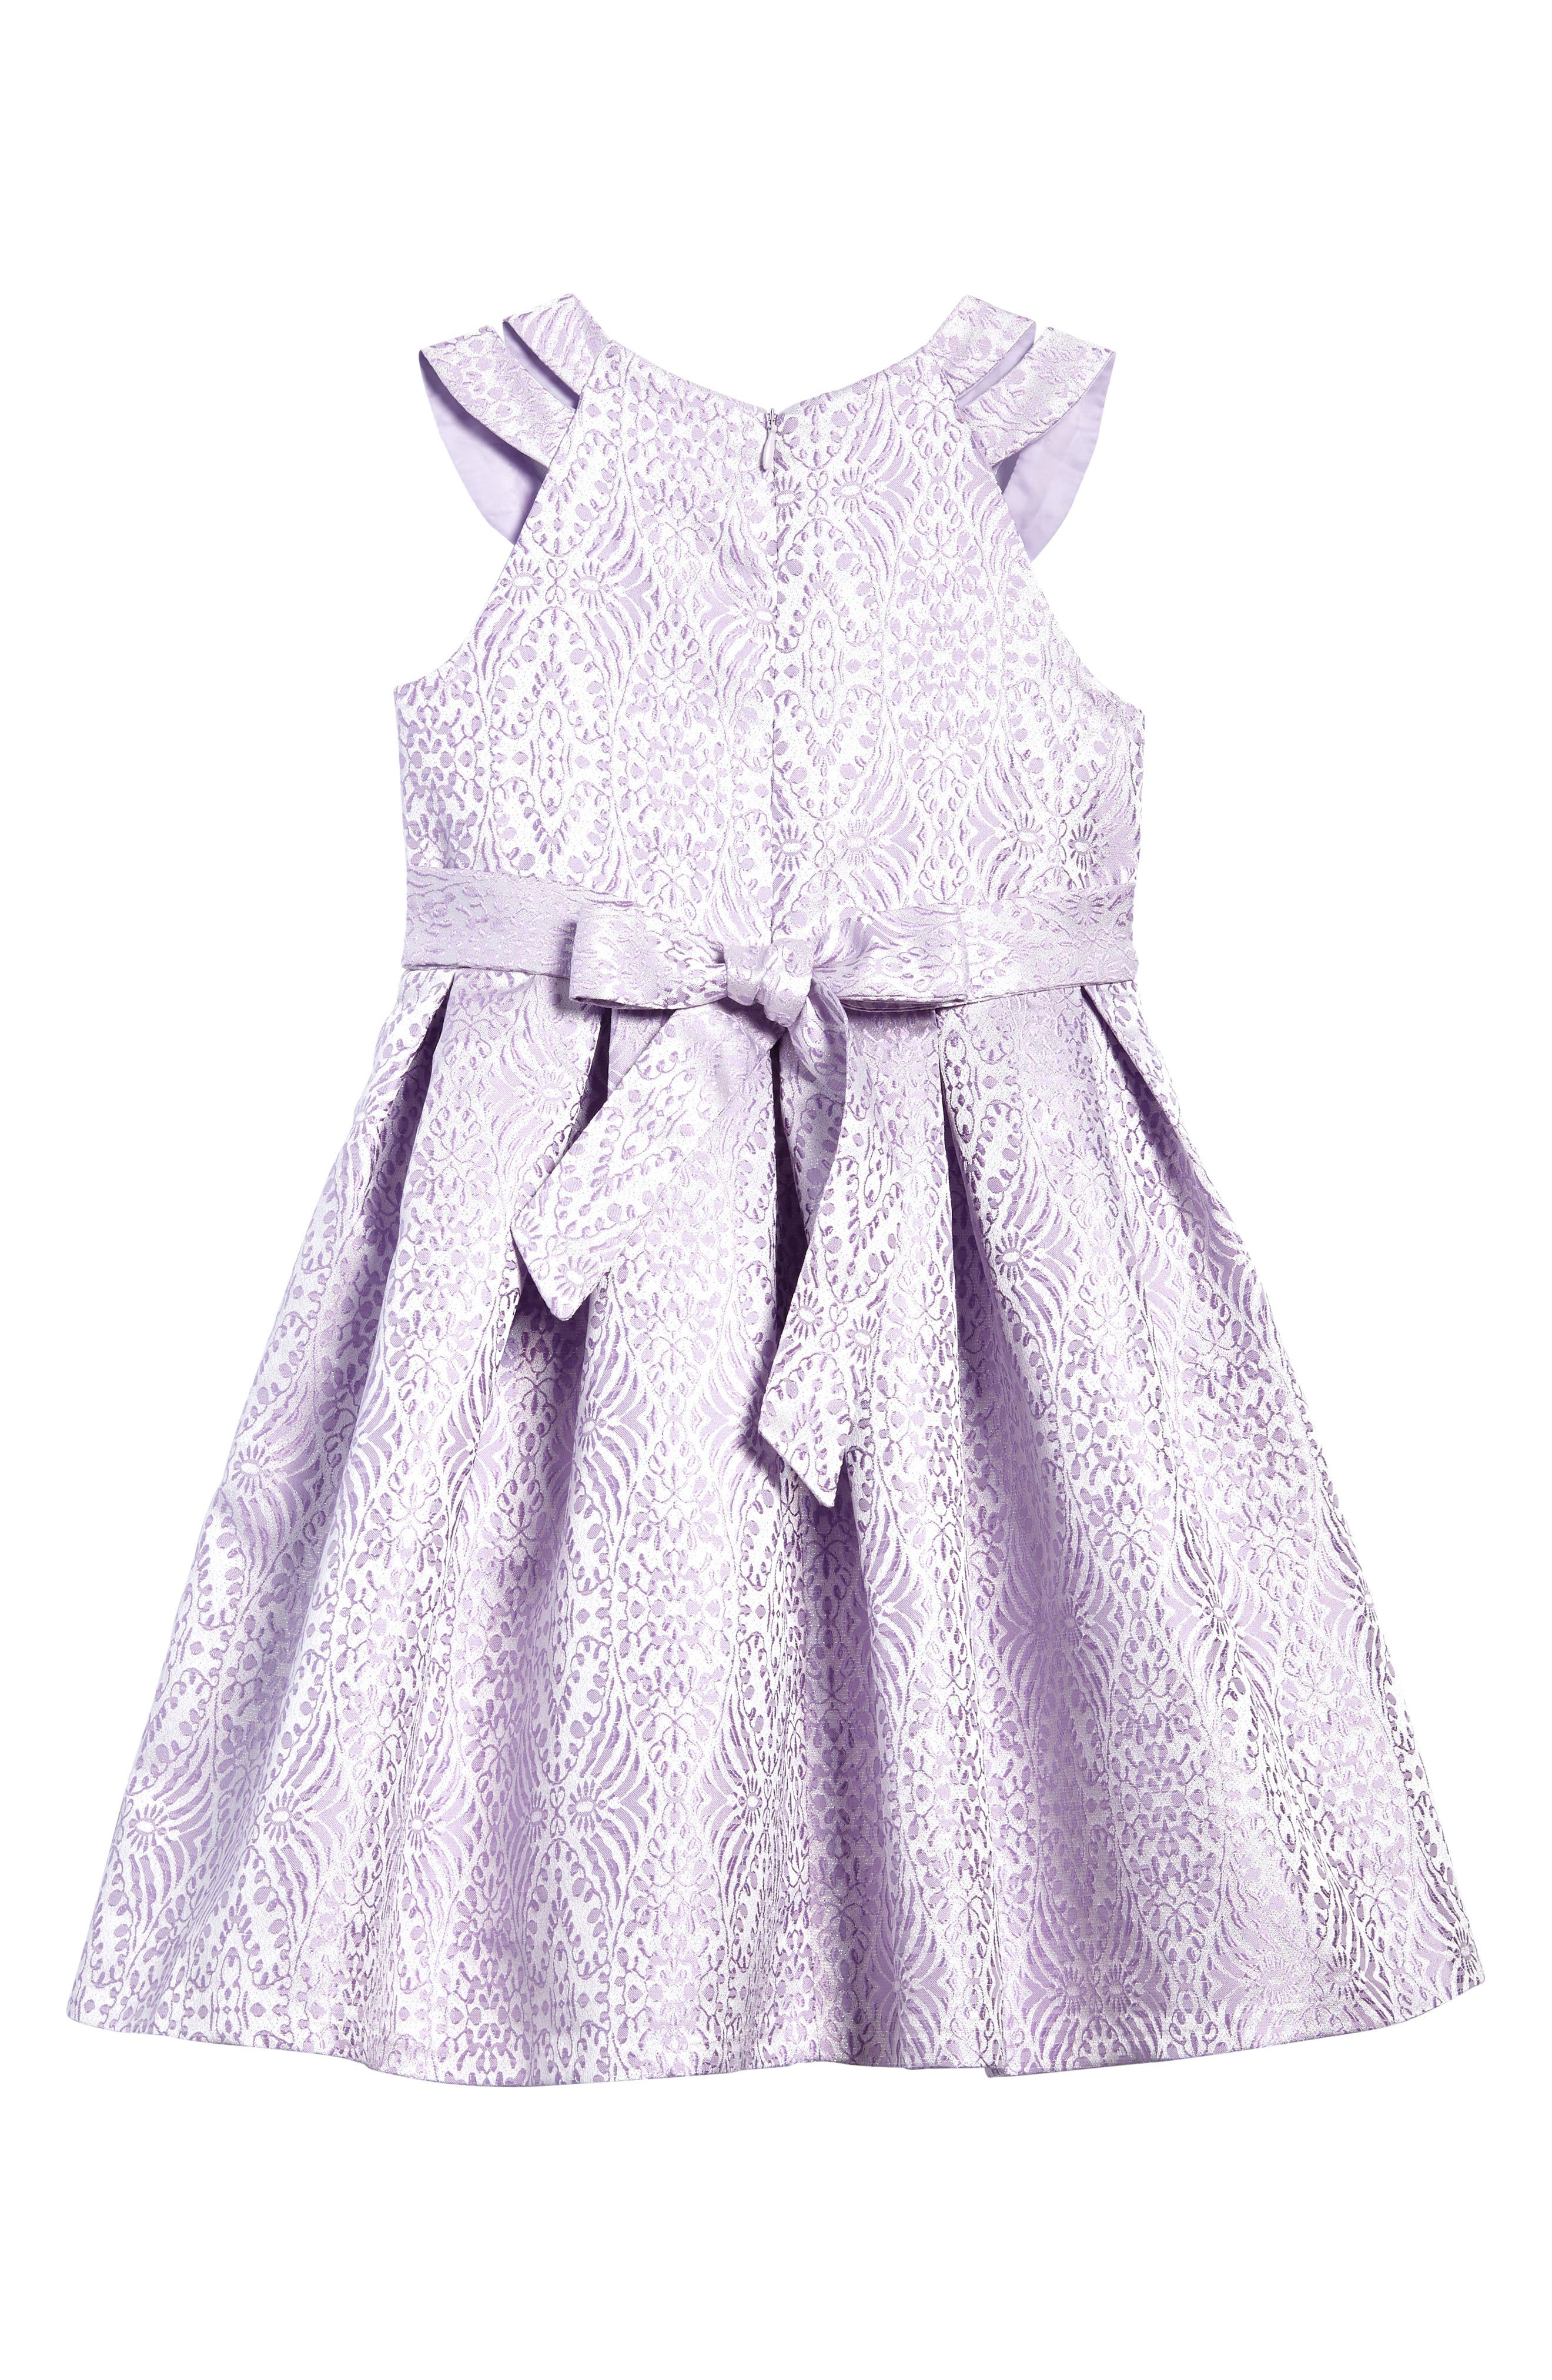 Jacquard Fit & Flare Dress,                             Alternate thumbnail 2, color,                             Lavendar